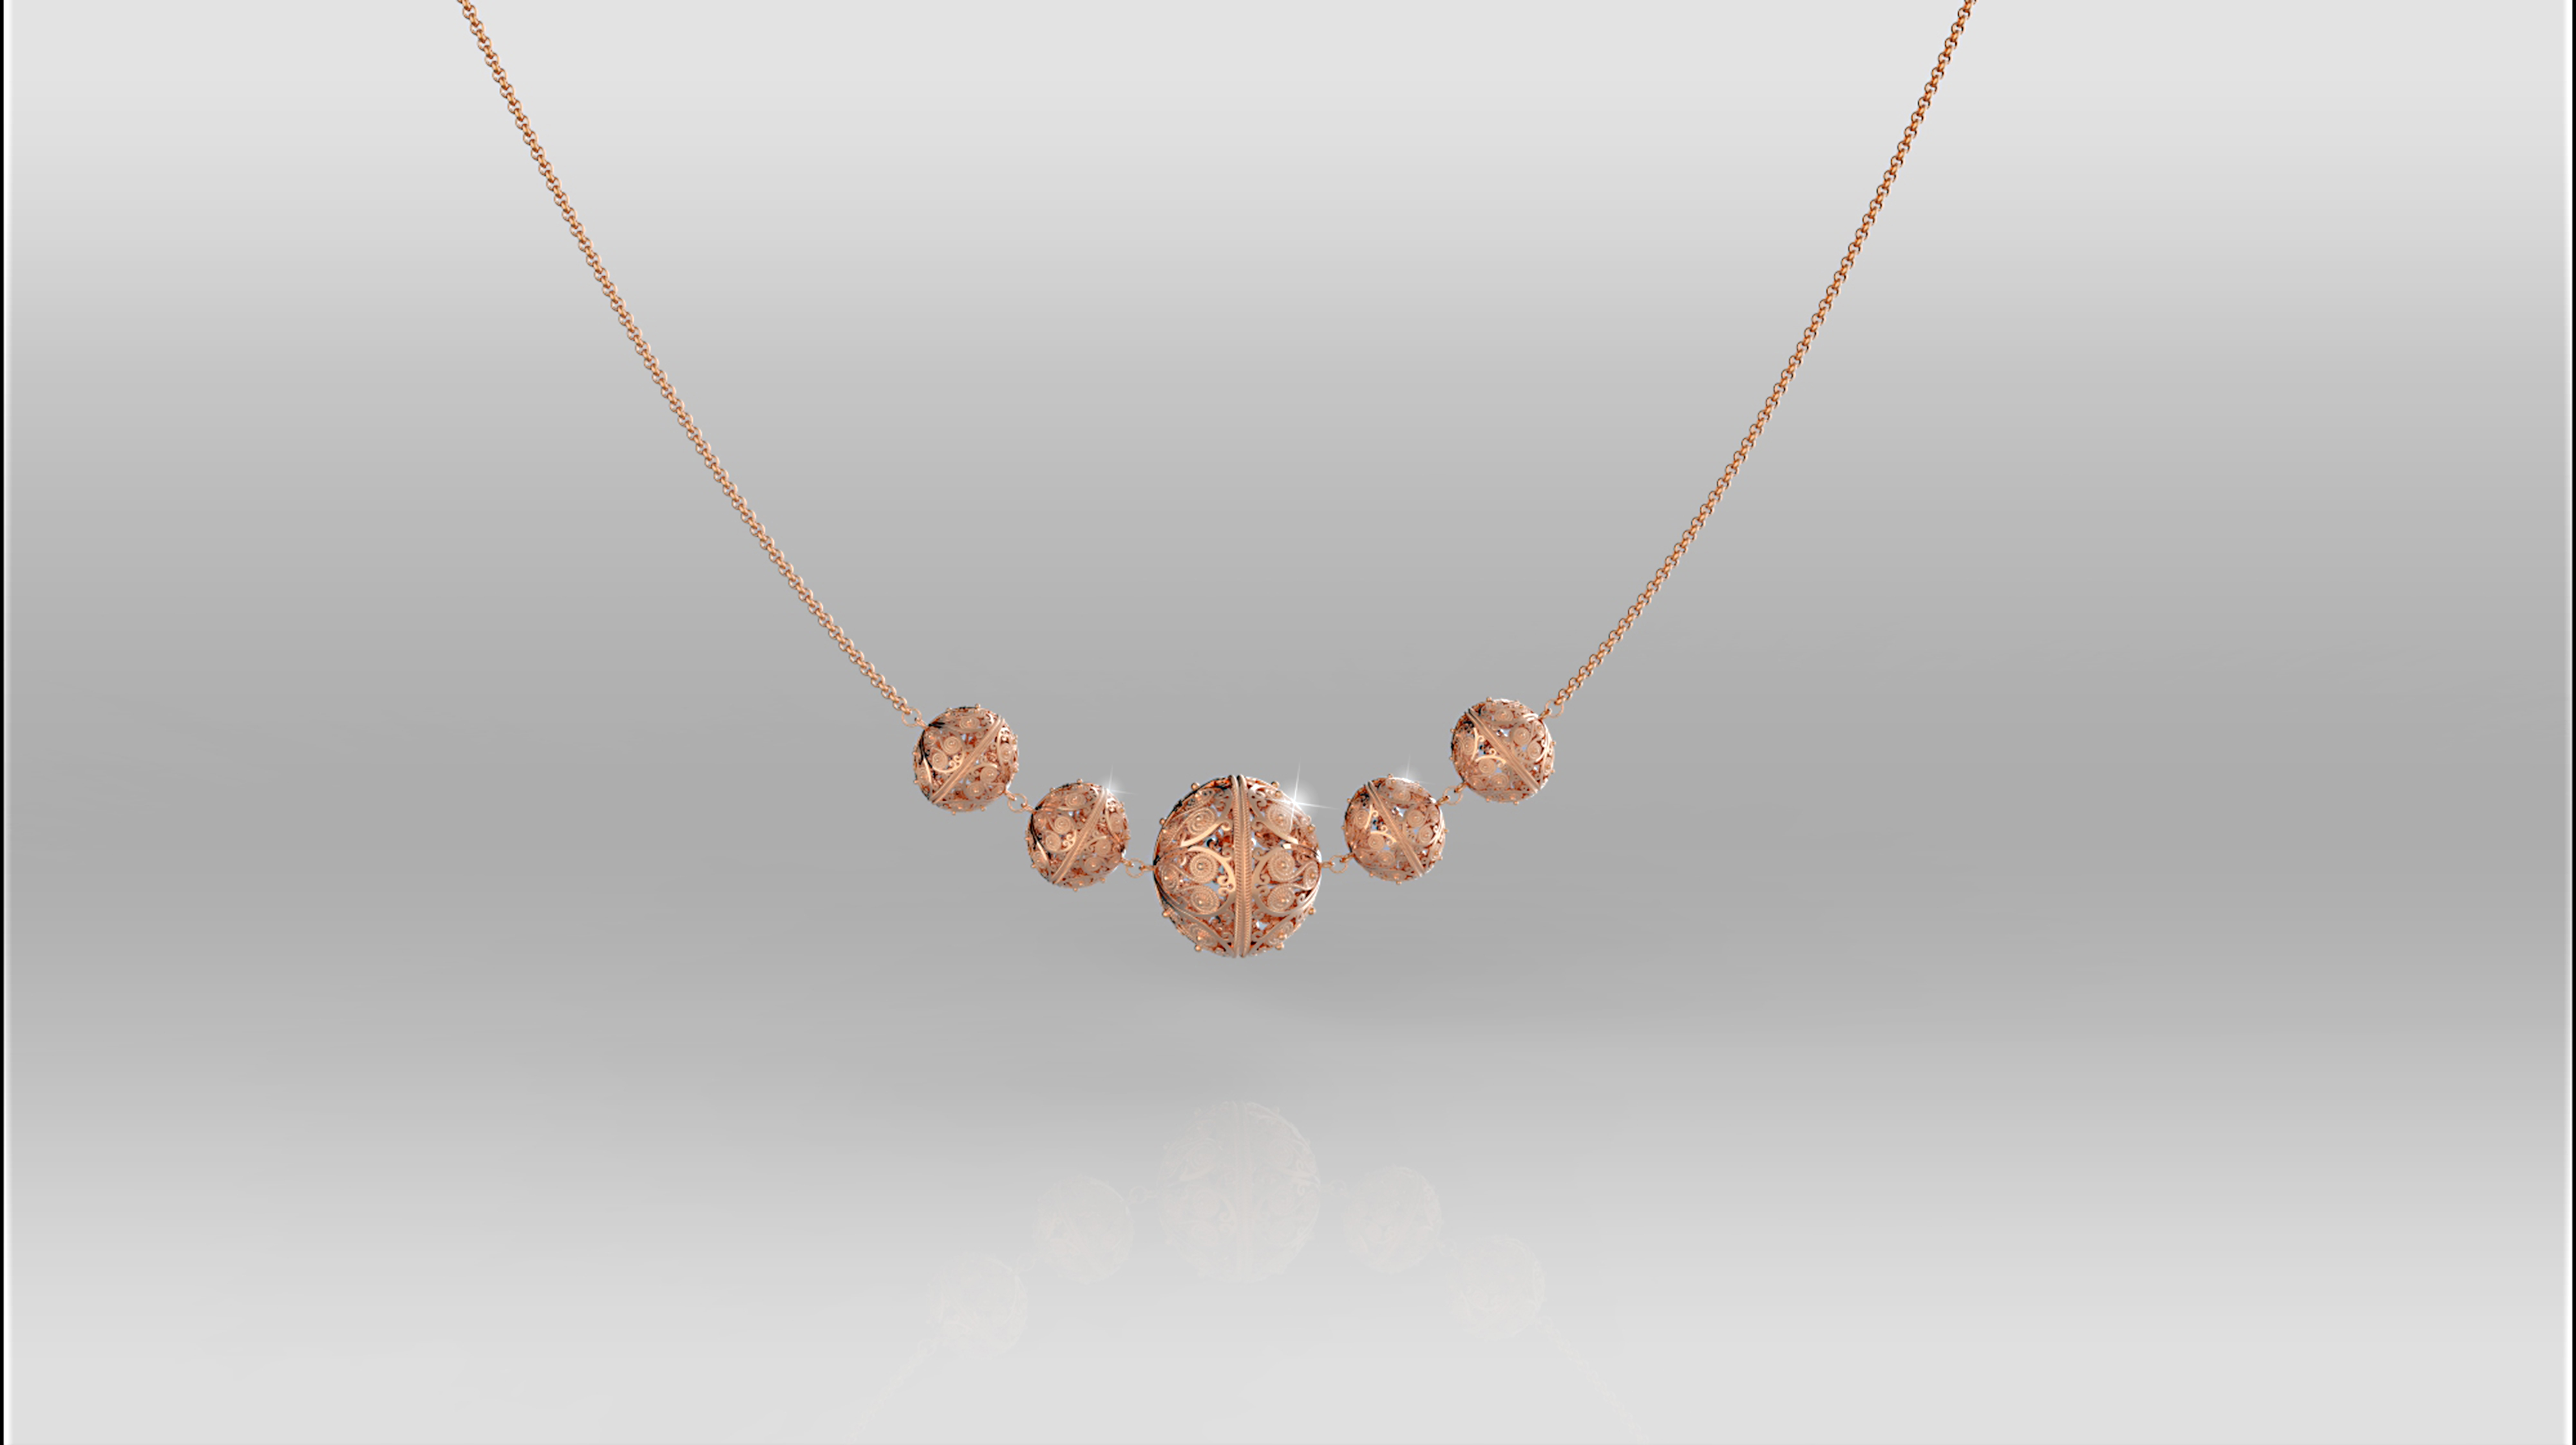 Necklace by Argentum